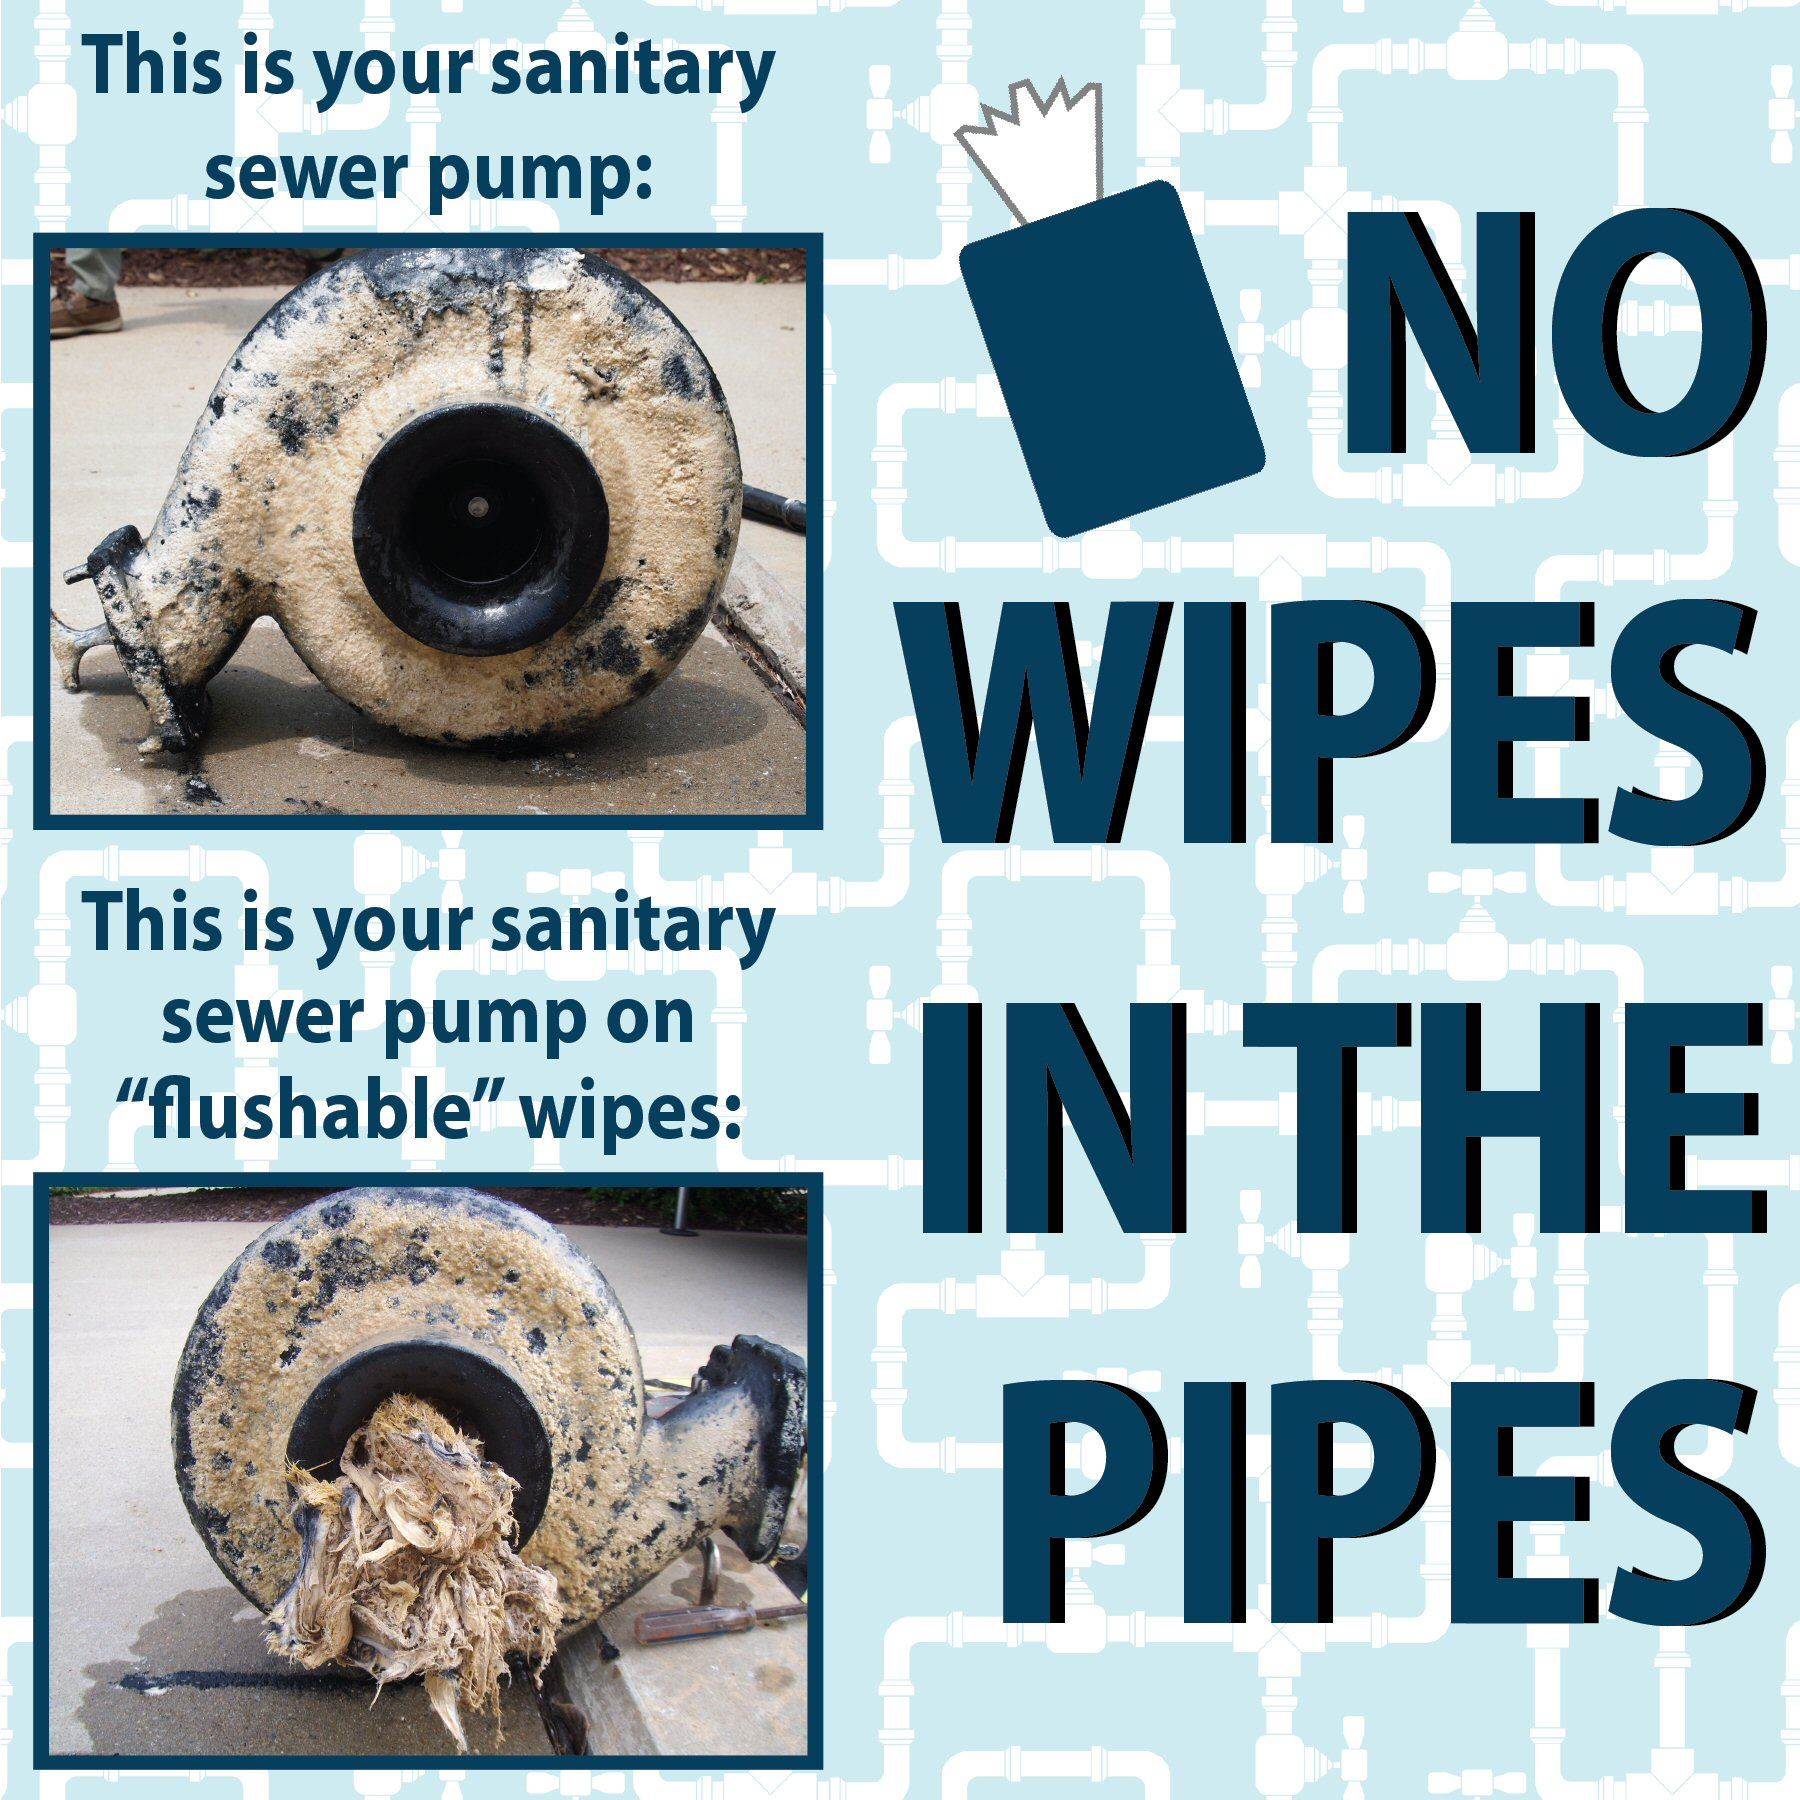 Pipes Clogged with Flushable Wipes